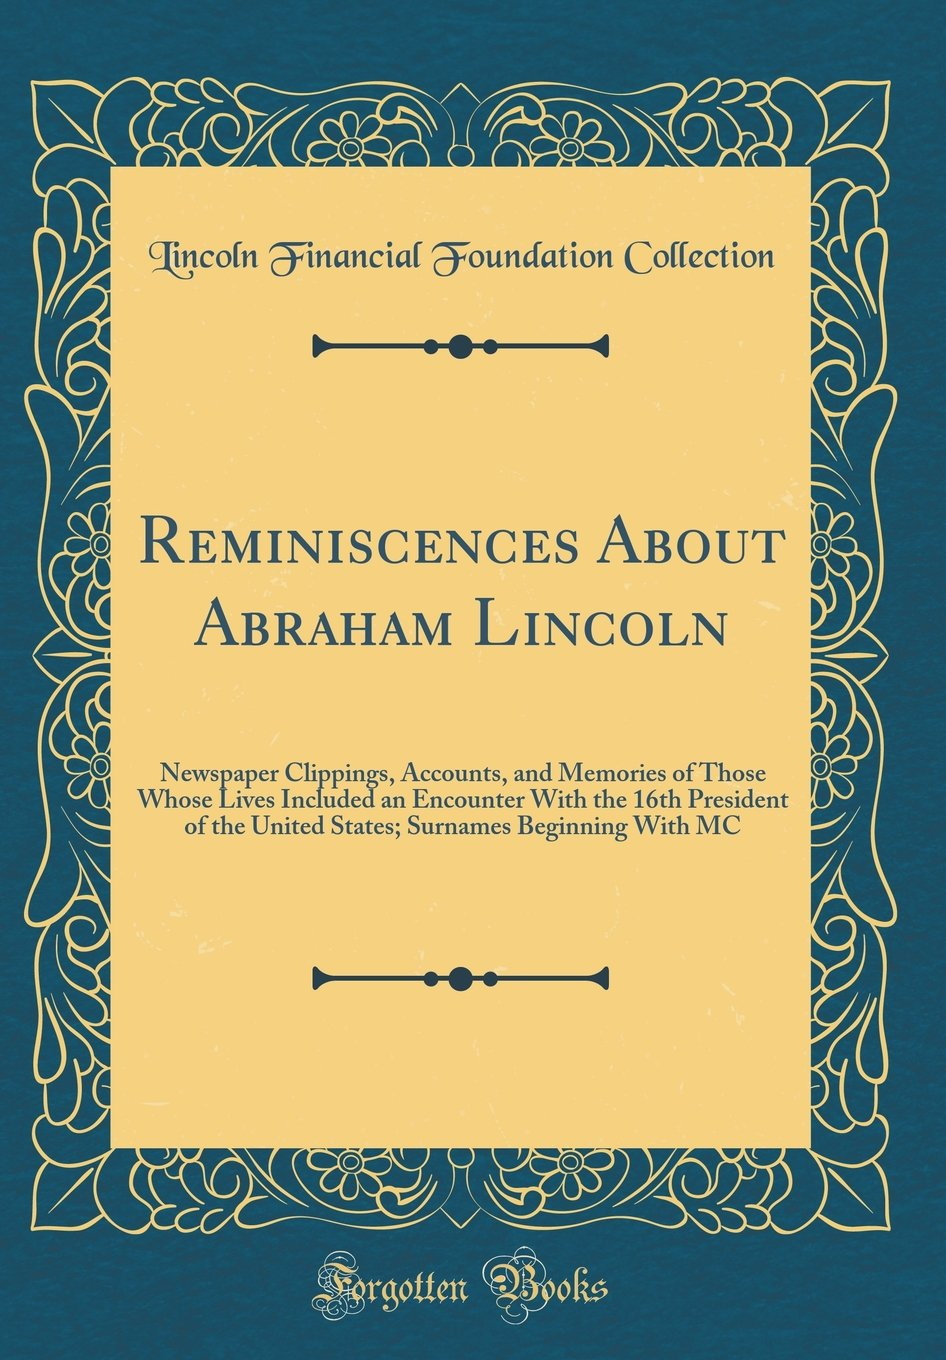 Reminiscences About Abraham Lincoln: Newspaper Clippings, Accounts, and Memories of Those Whose Lives Included an Encounter With the 16th President of ... Surnames Beginning With MC (Classic Reprint) pdf epub